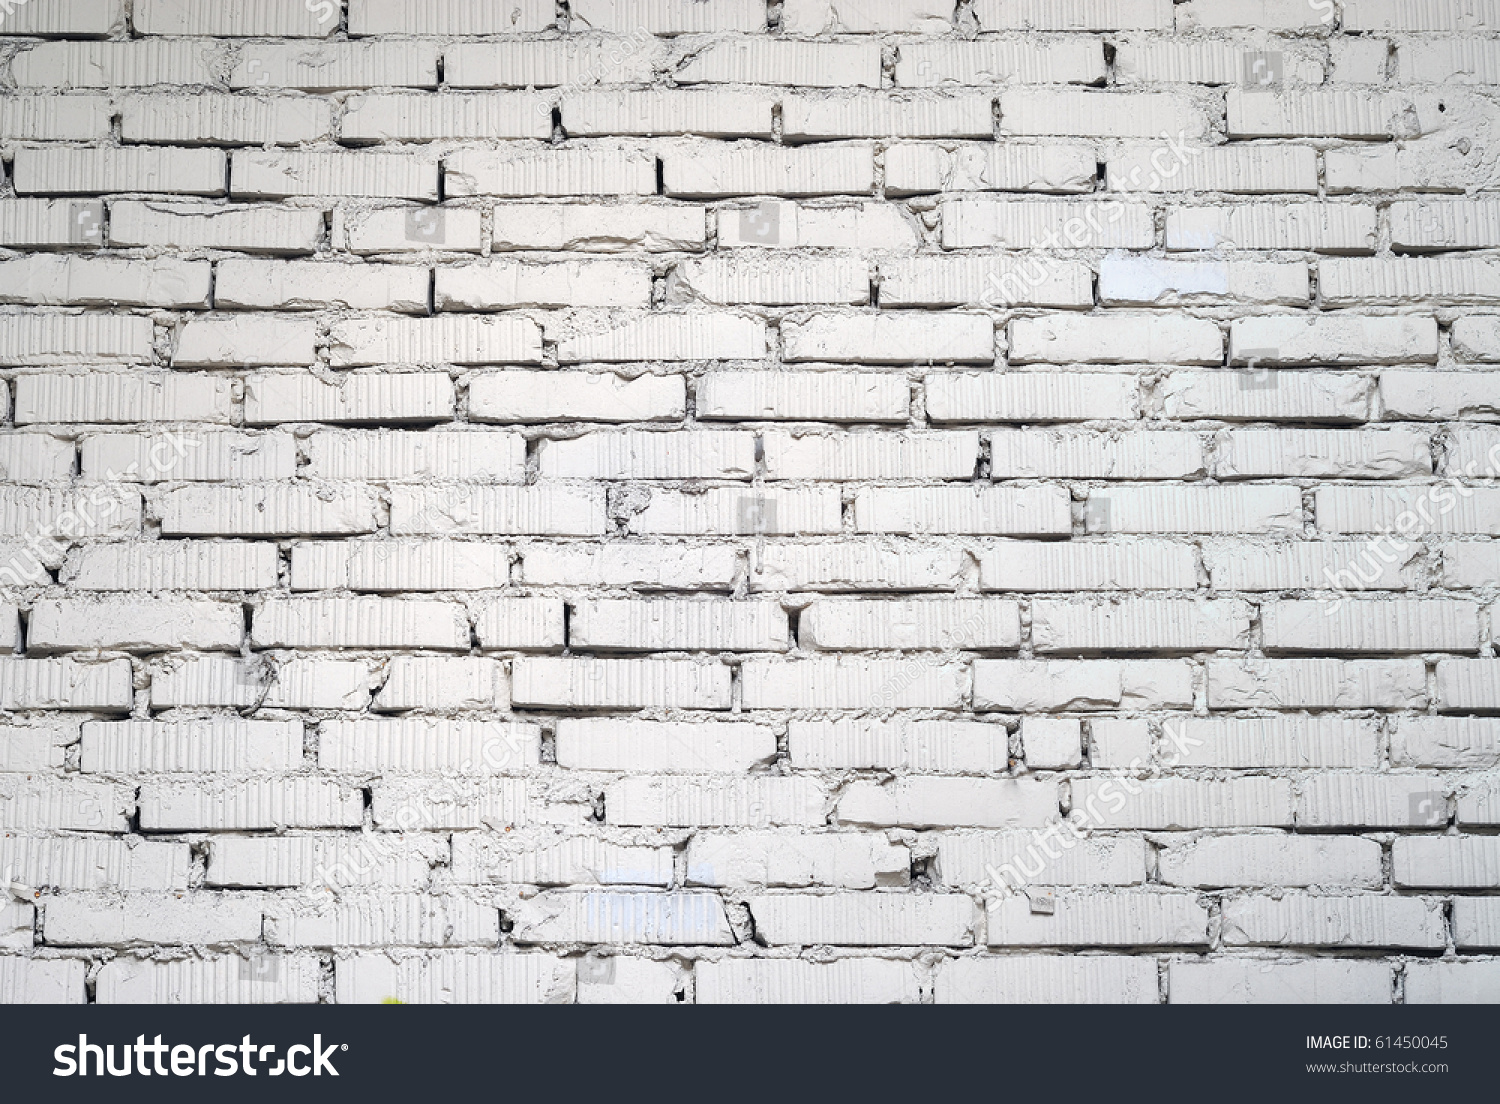 White Painted Old Brick Wall Stock Photo 61450045